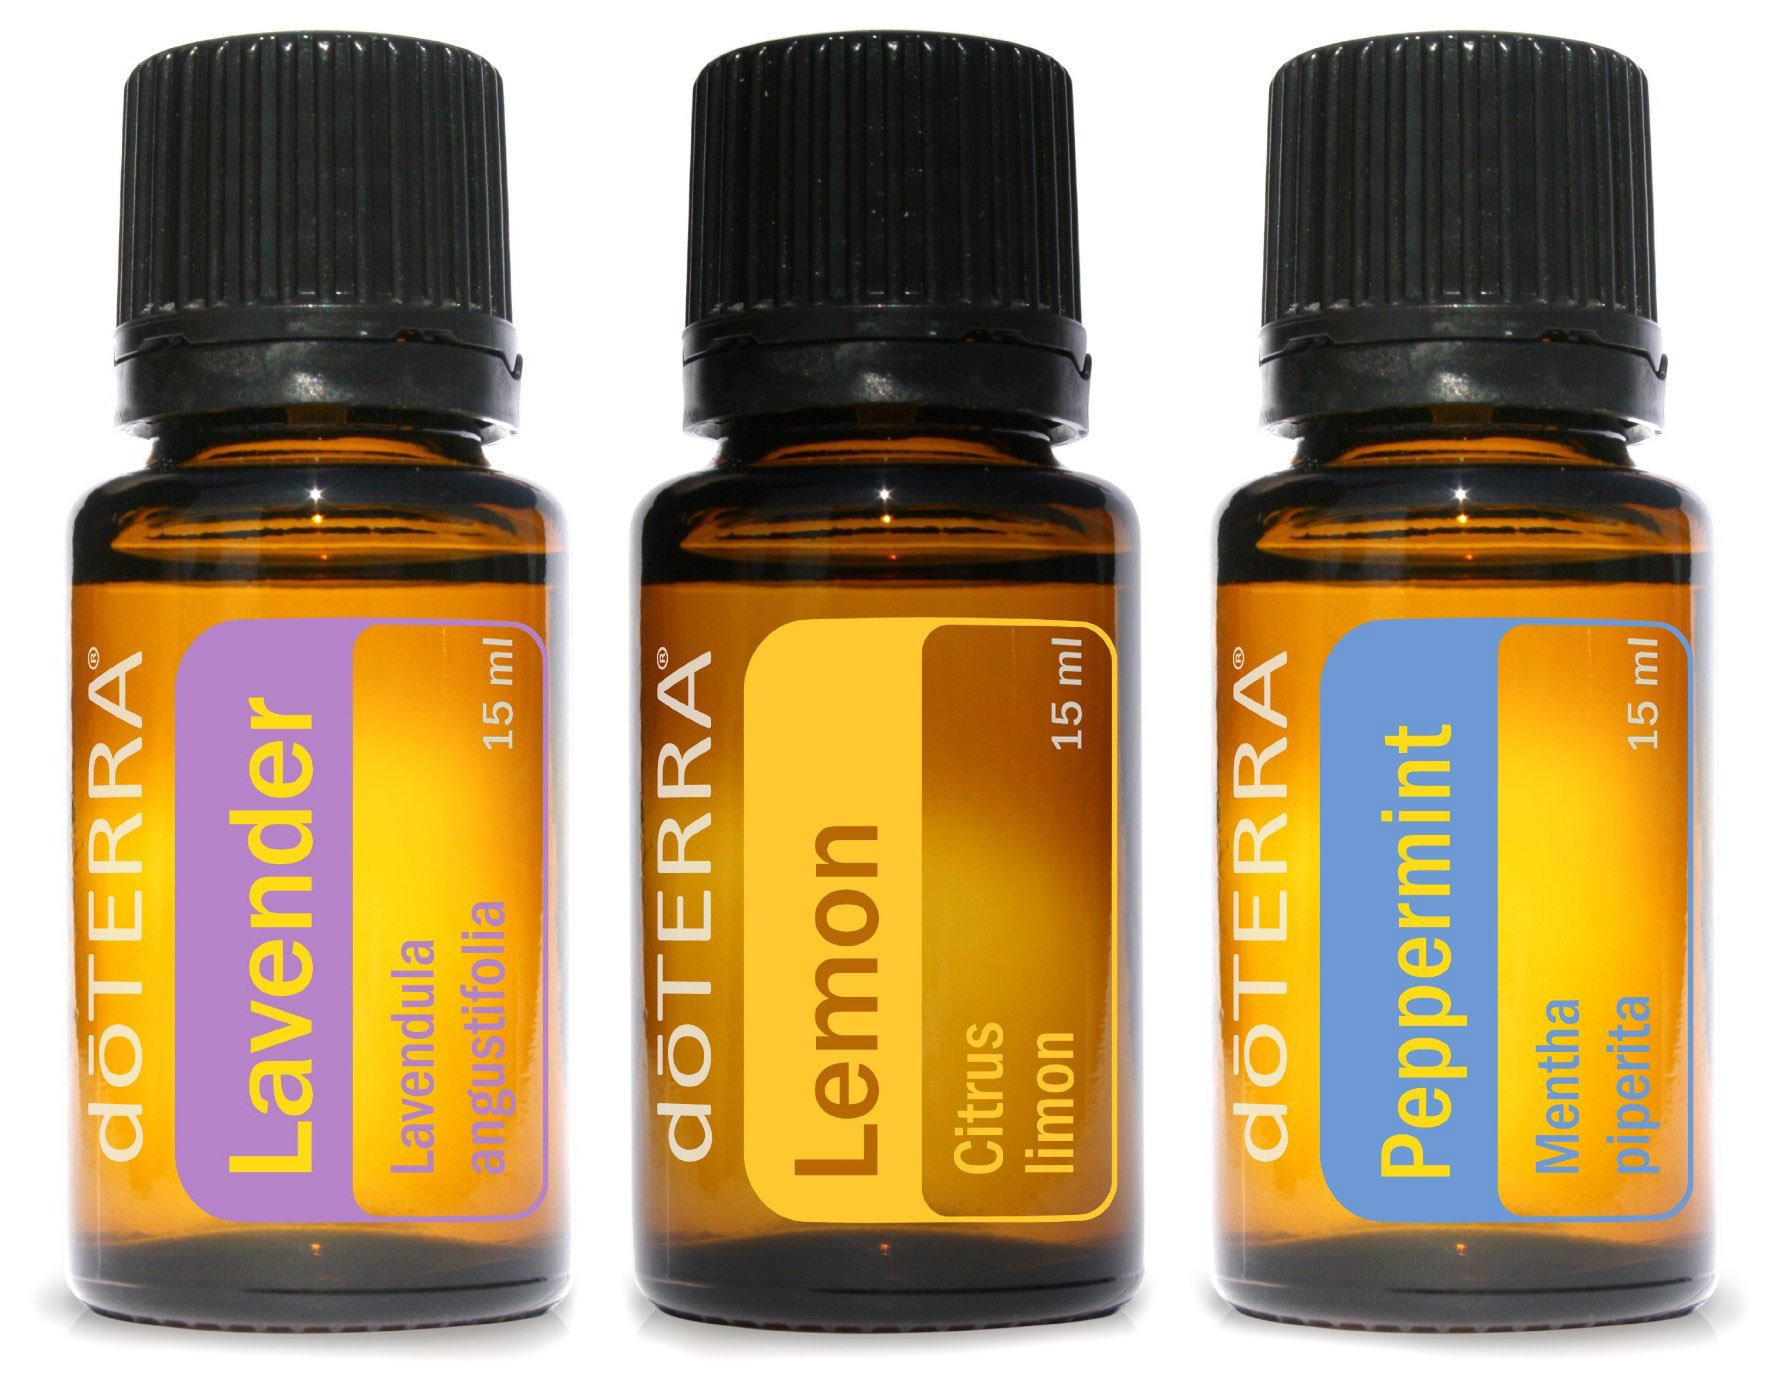 doTERRA - Beginner's Trio Essential Oils - Lavender, Lemon, and Peppermint by DoTerra